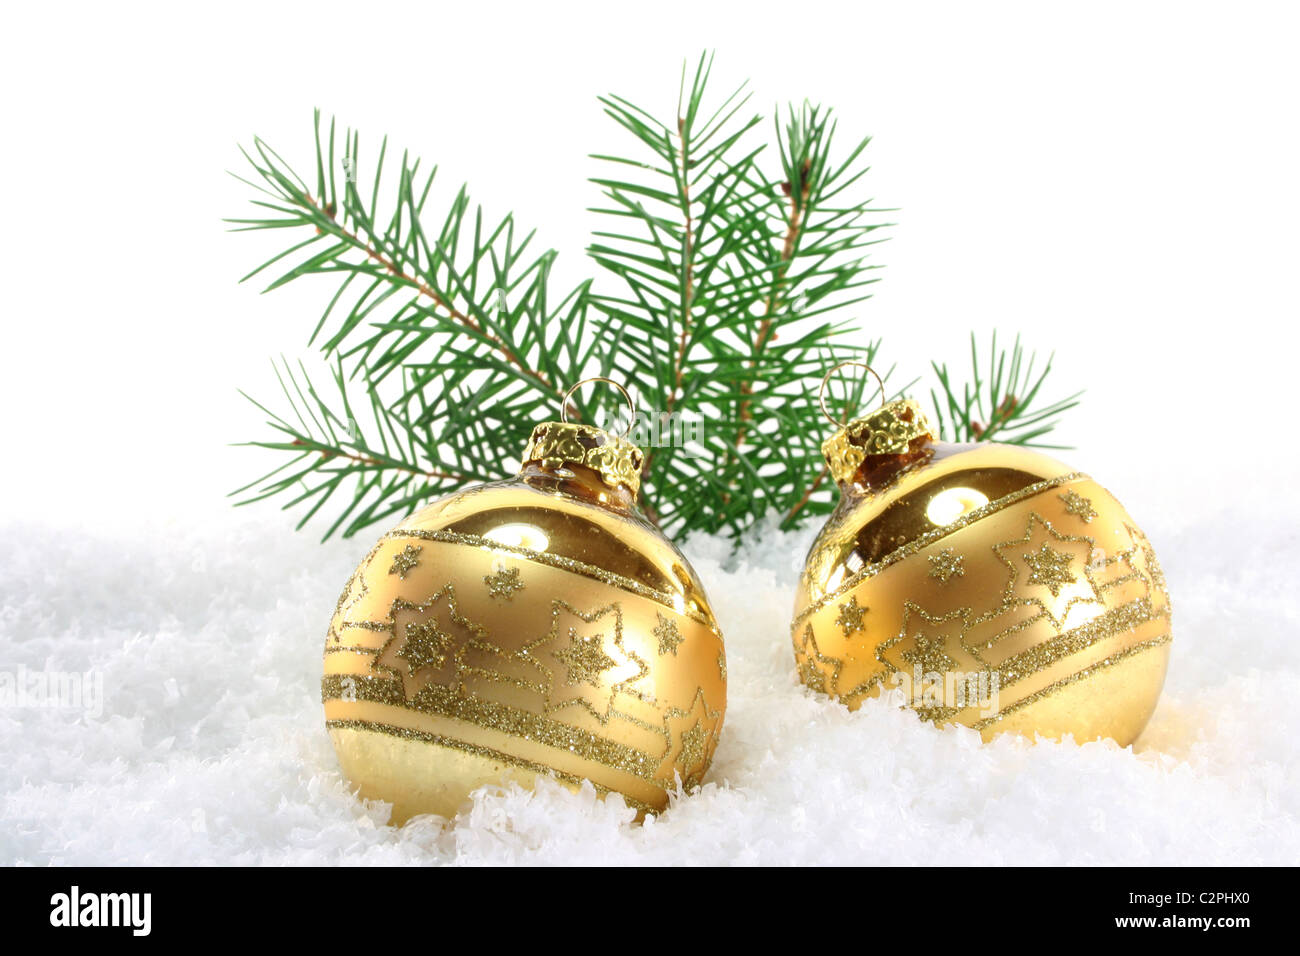 one golden Christmas ball with pine branches lies in the snow - Stock Image